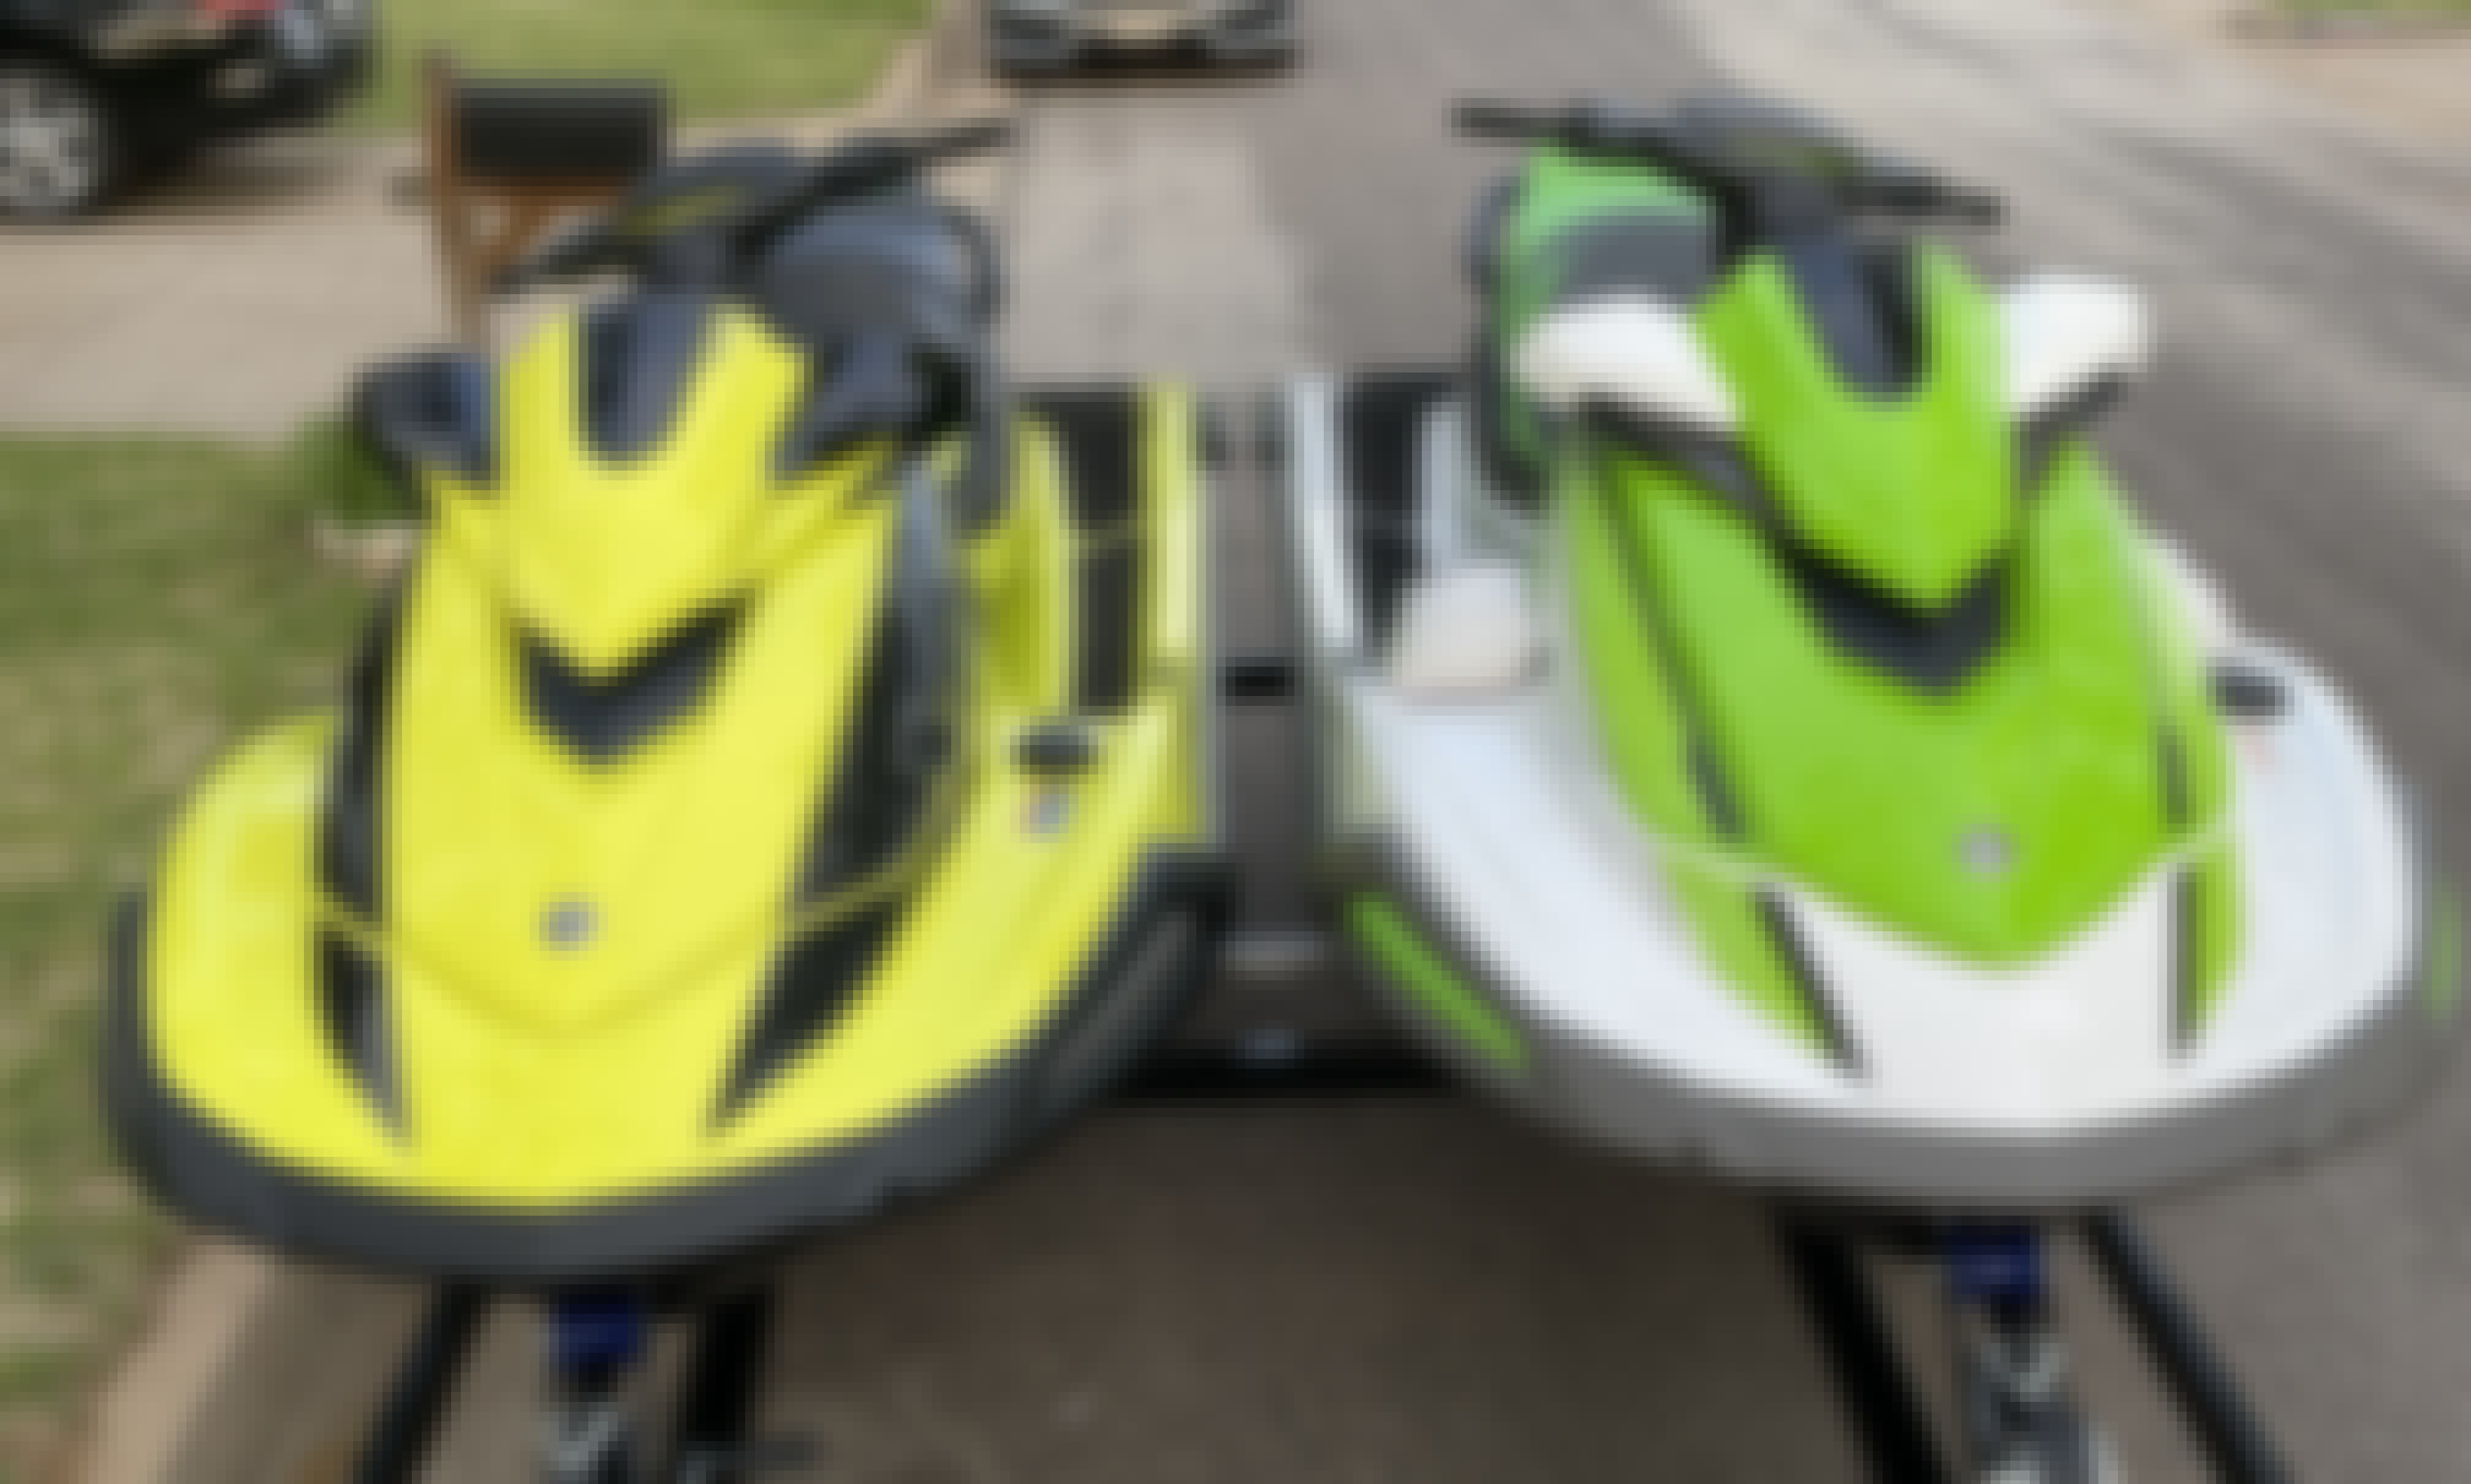 2021 Yamaha Waverunner Jet Skis For Rent x 2 | Eagle Mountain Lake